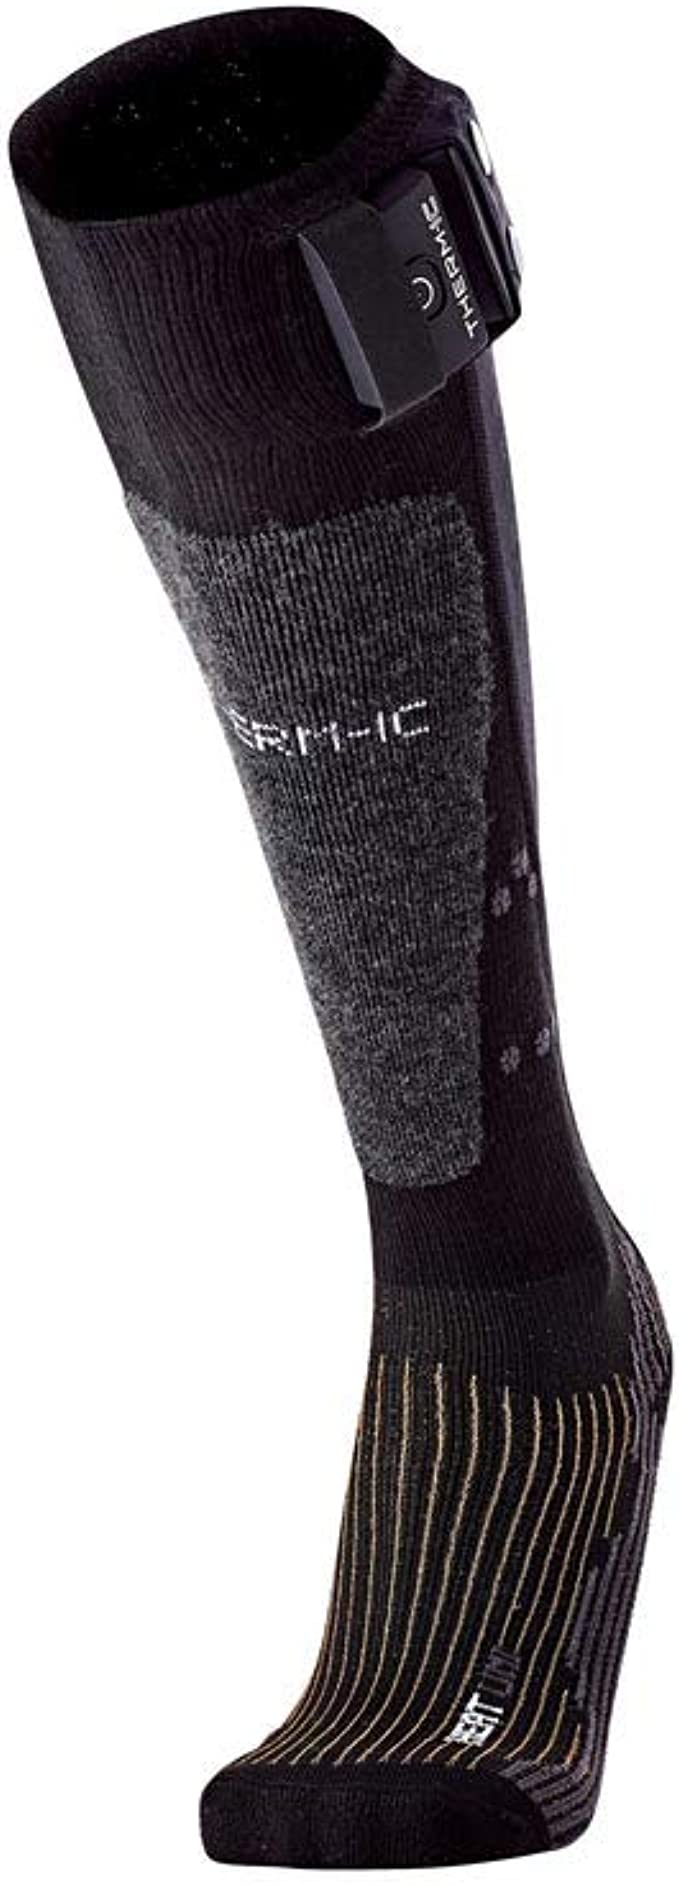 Thermo-Powersock 1400